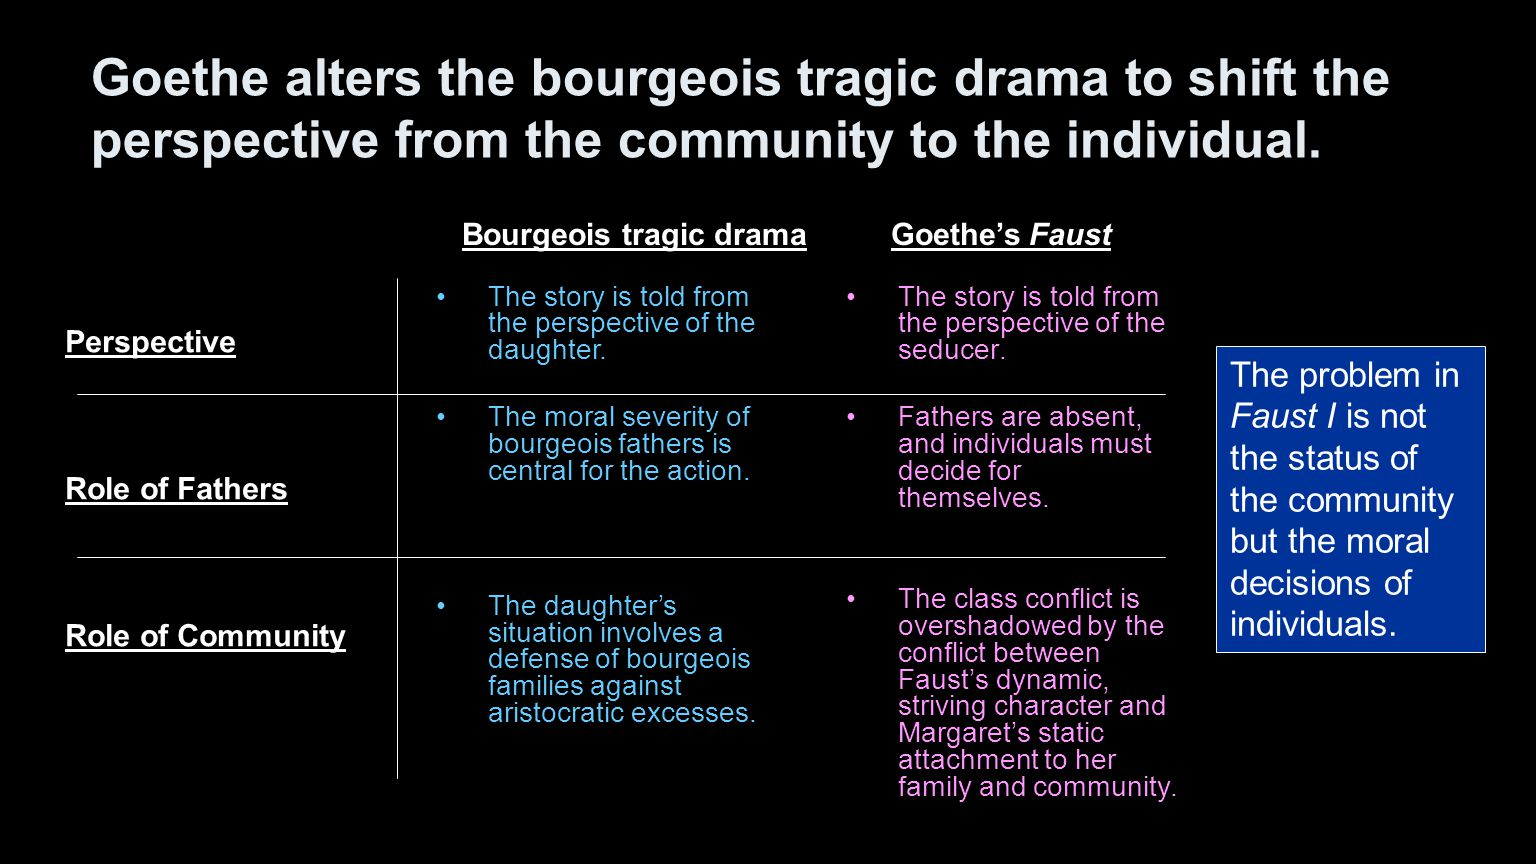 Goethe alters the bourgeois tragic drama to shift the perspective from the community to the individual.